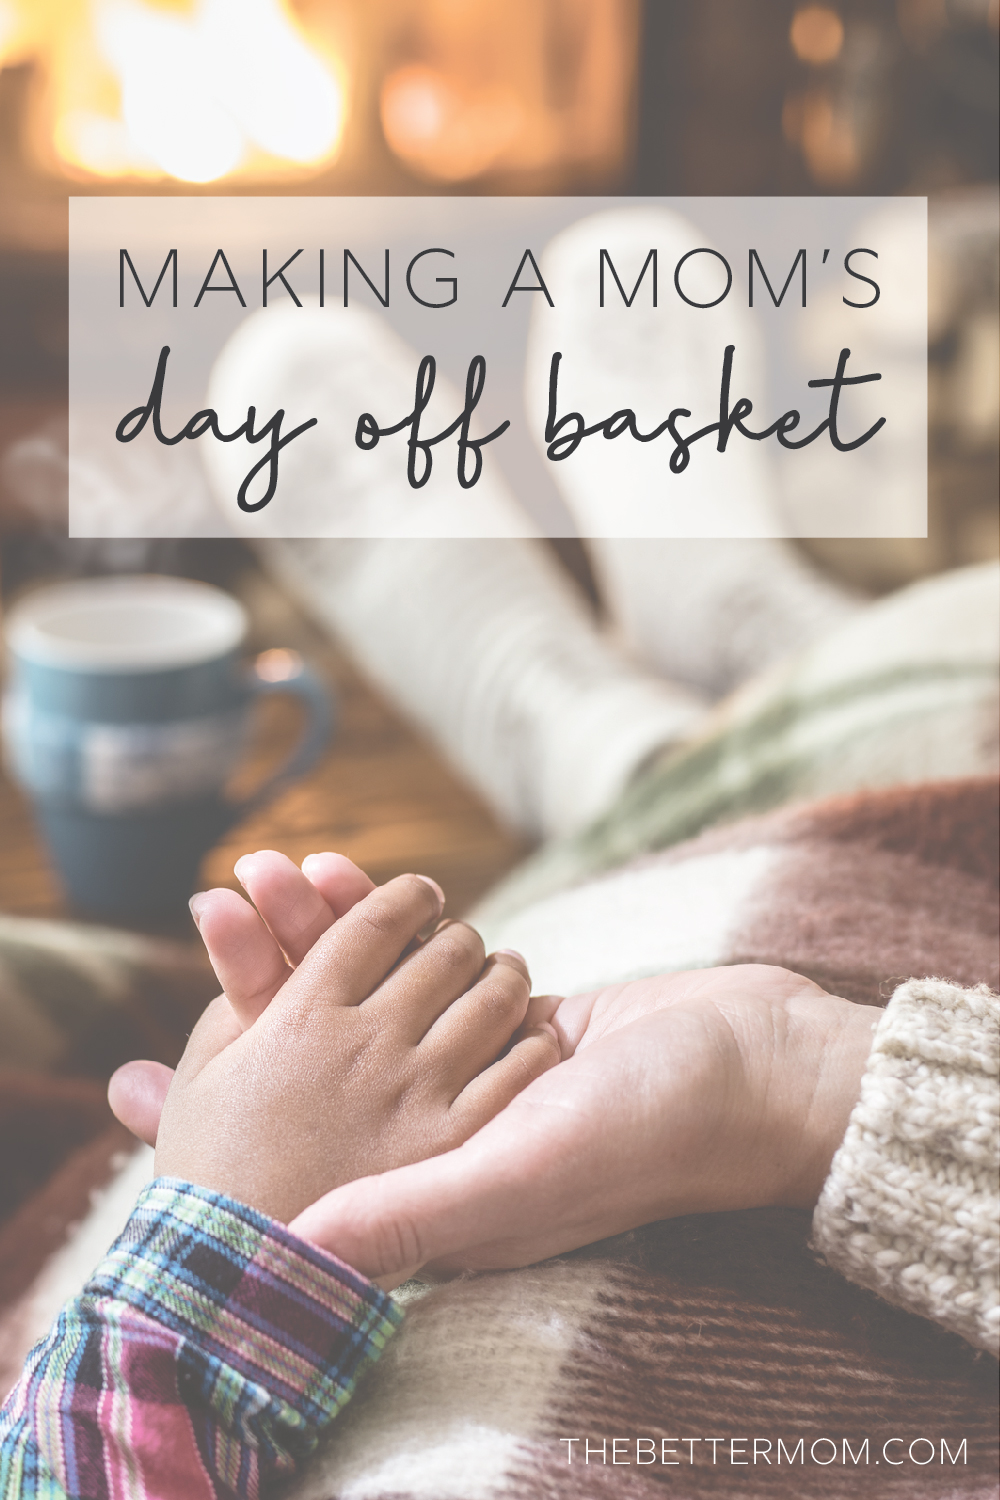 Do you know a mom who needs a break? Of course you do! Be inspired to serve a mom you love by giving her a day off- it's a simple act of service that will have a huge impact on her life.